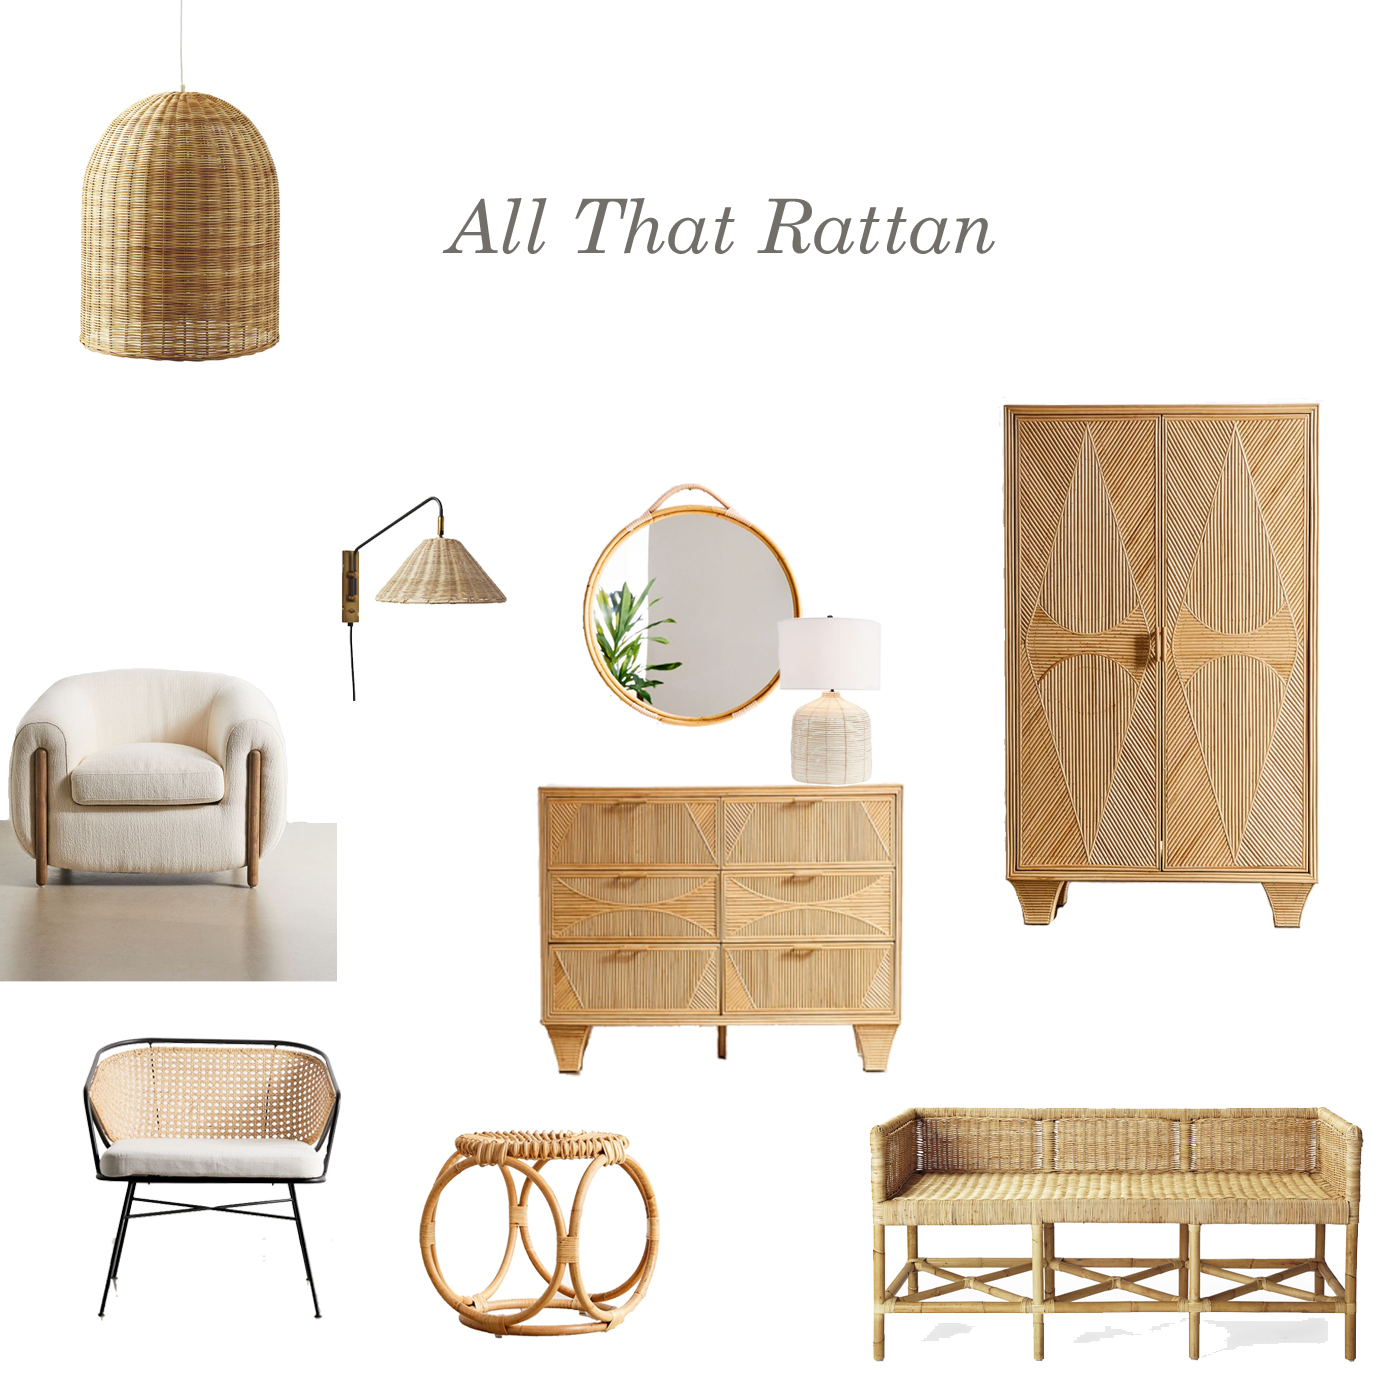 All that Rattan